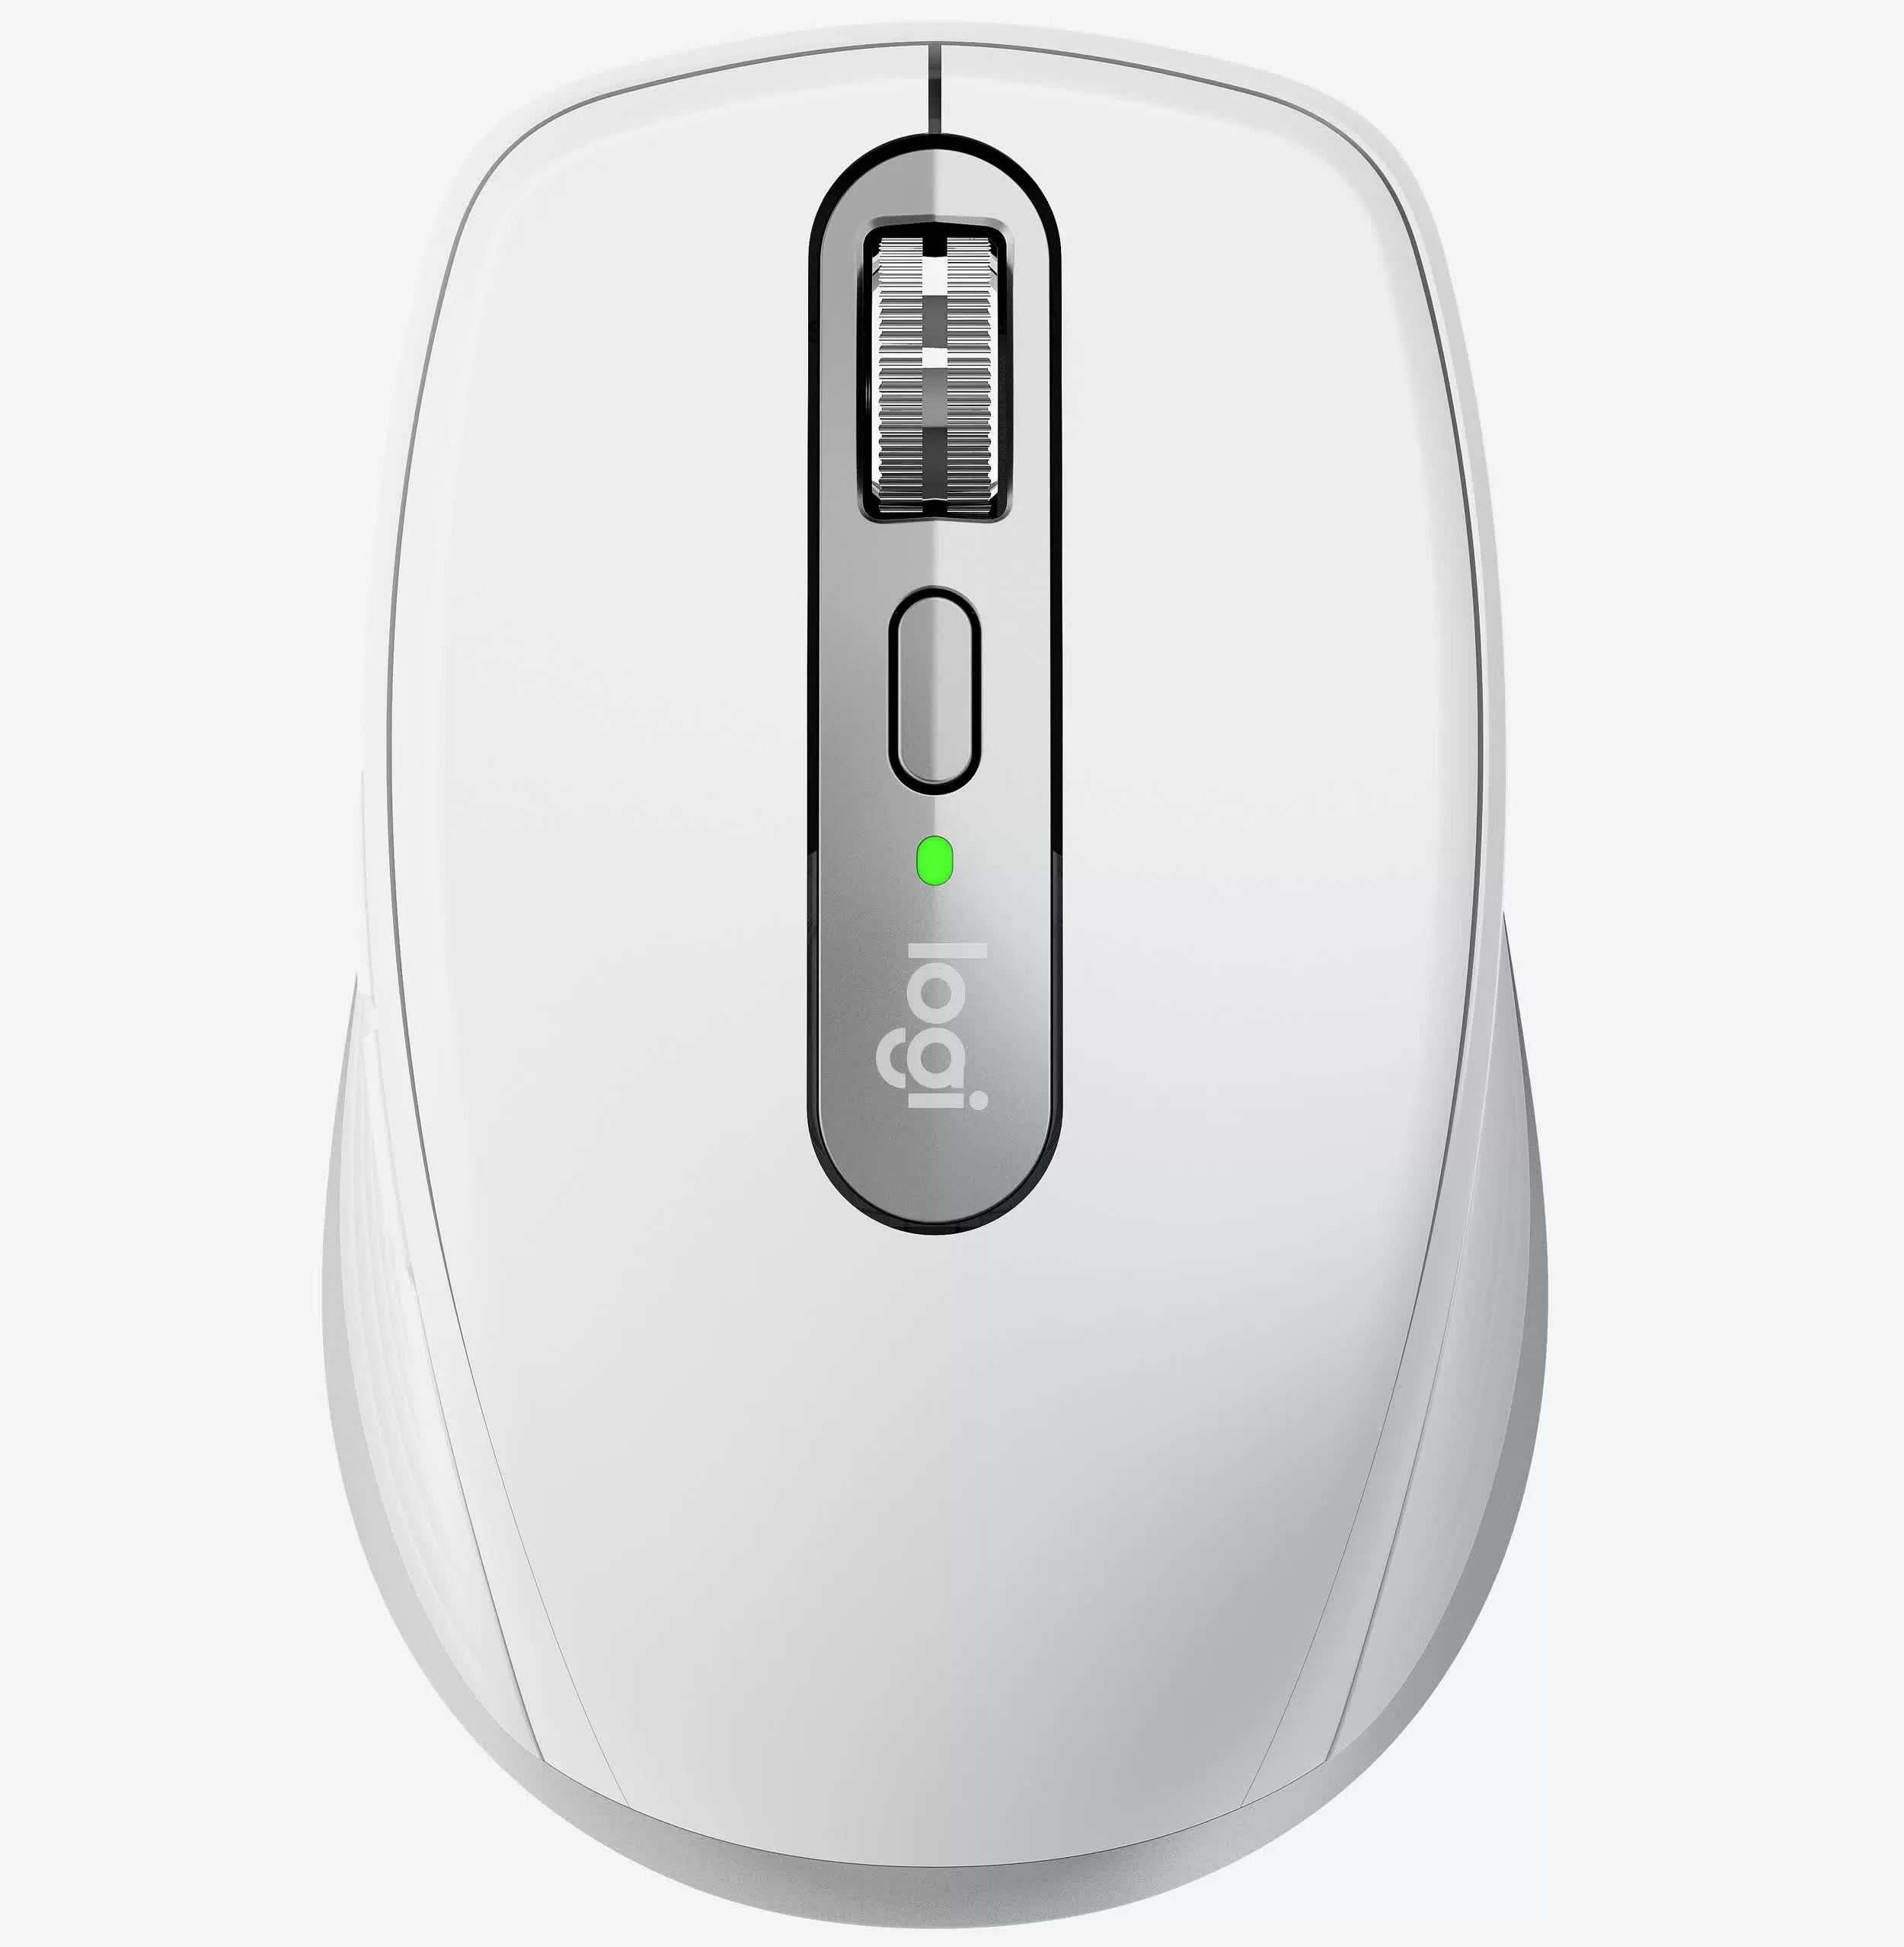 Logitech's new MX Anywhere 3 mouse has MagSpeed hyper-fast scrolling